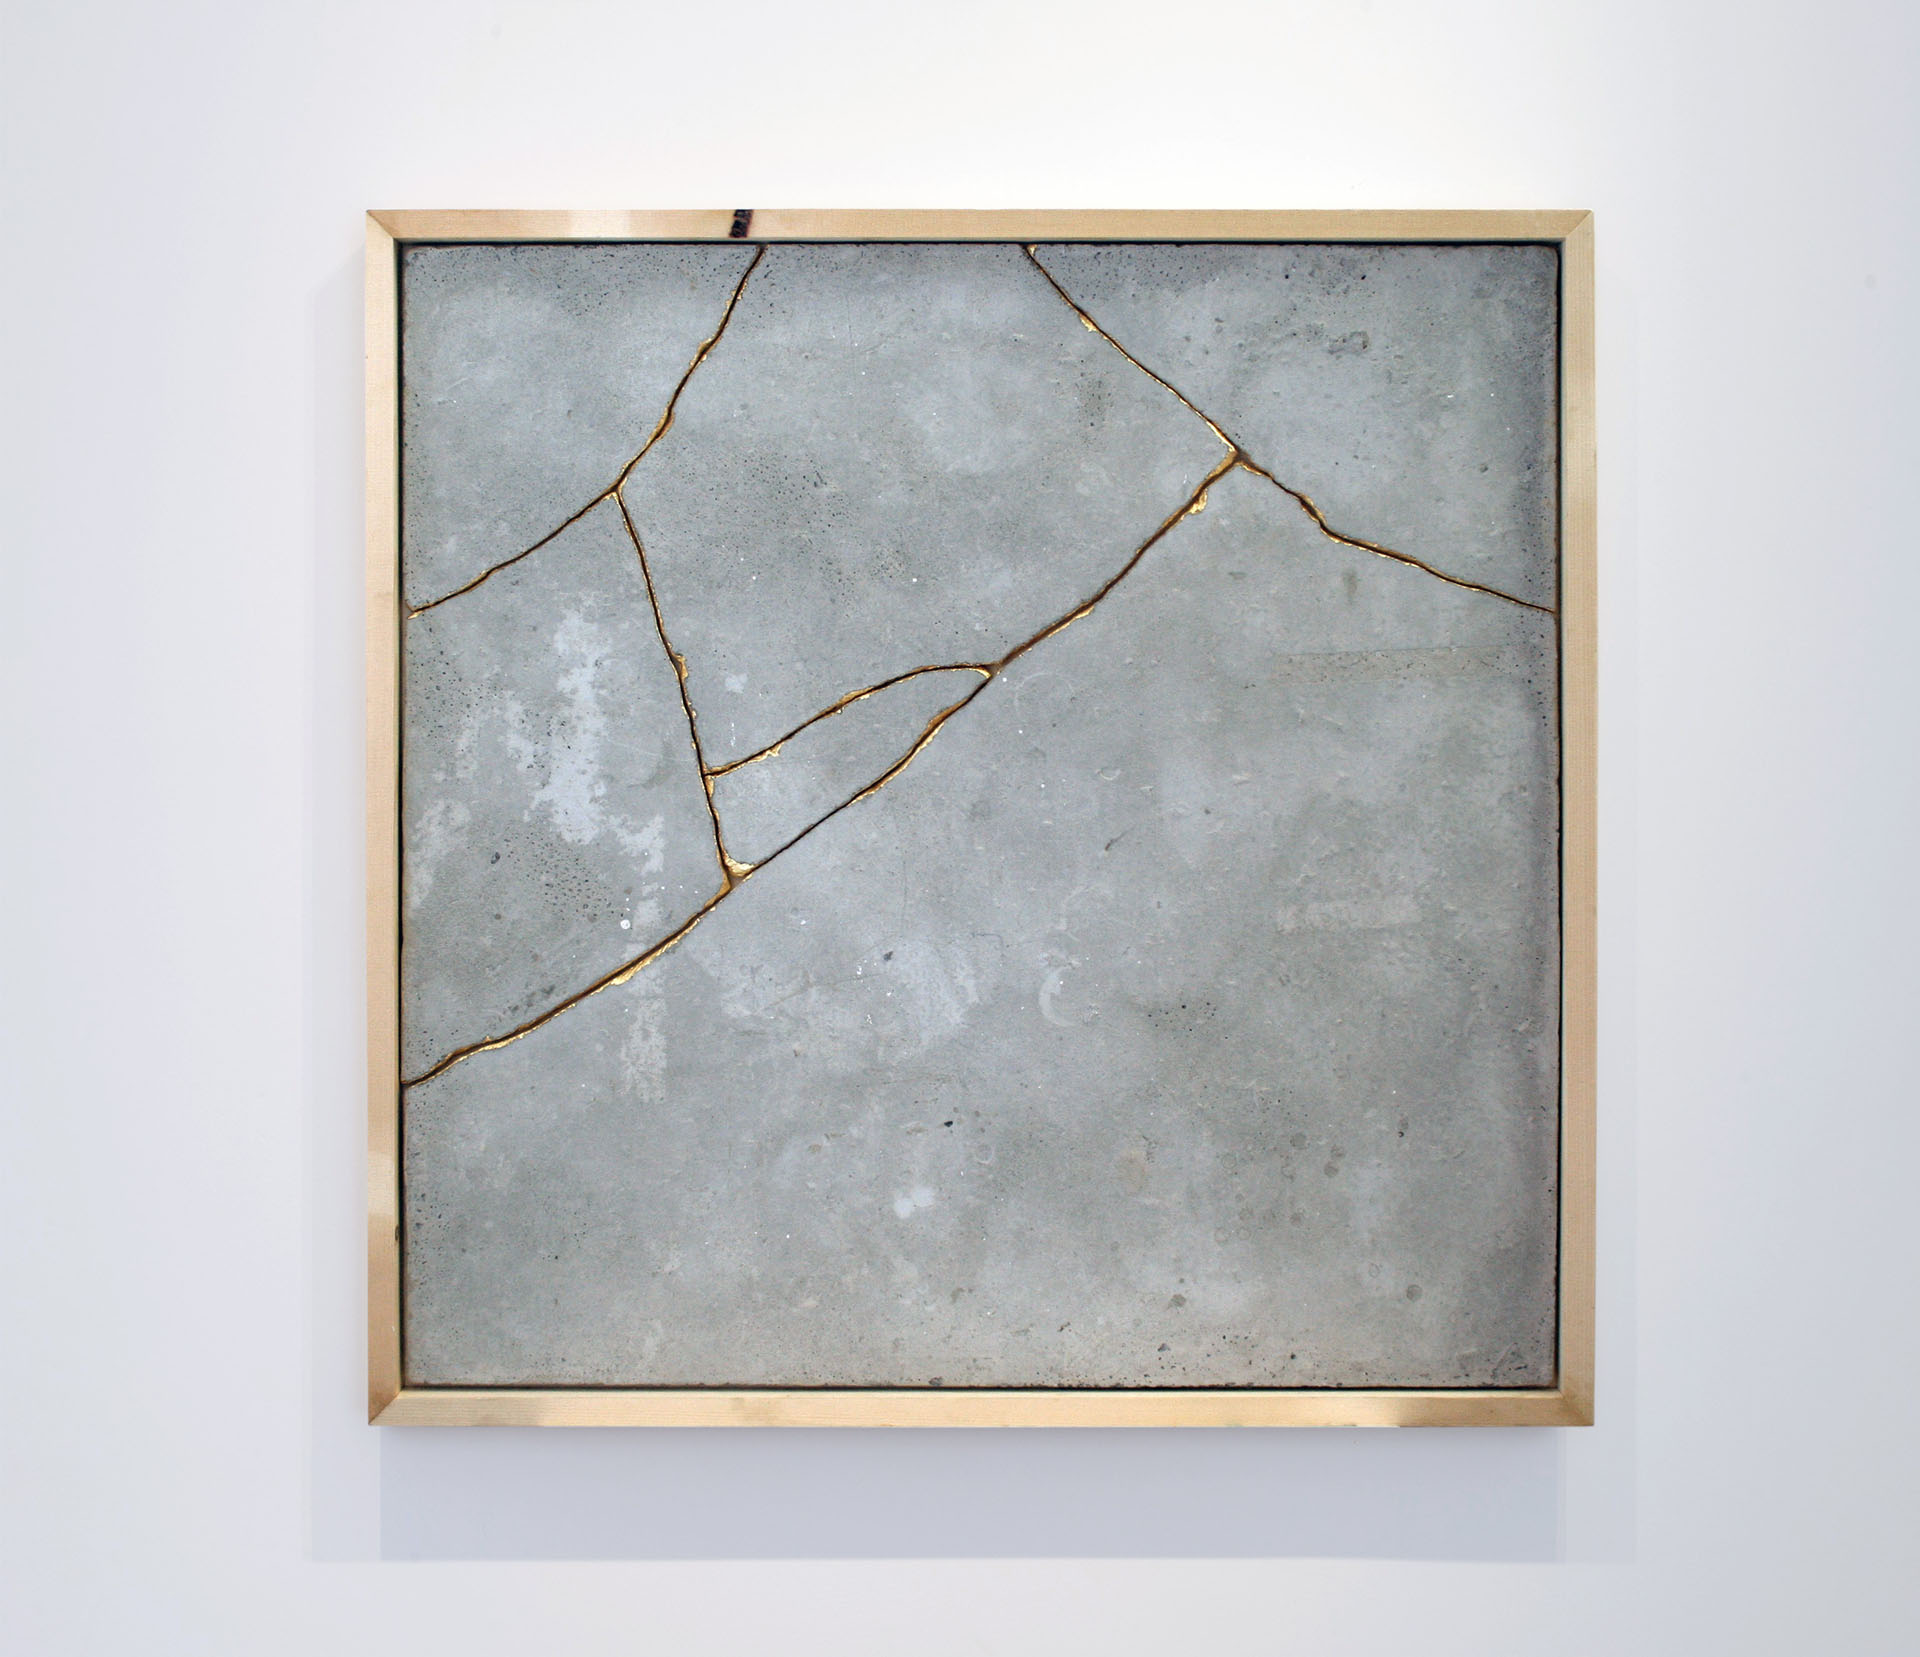 MQ - 2016, 105x105cm, Concrete wood gold